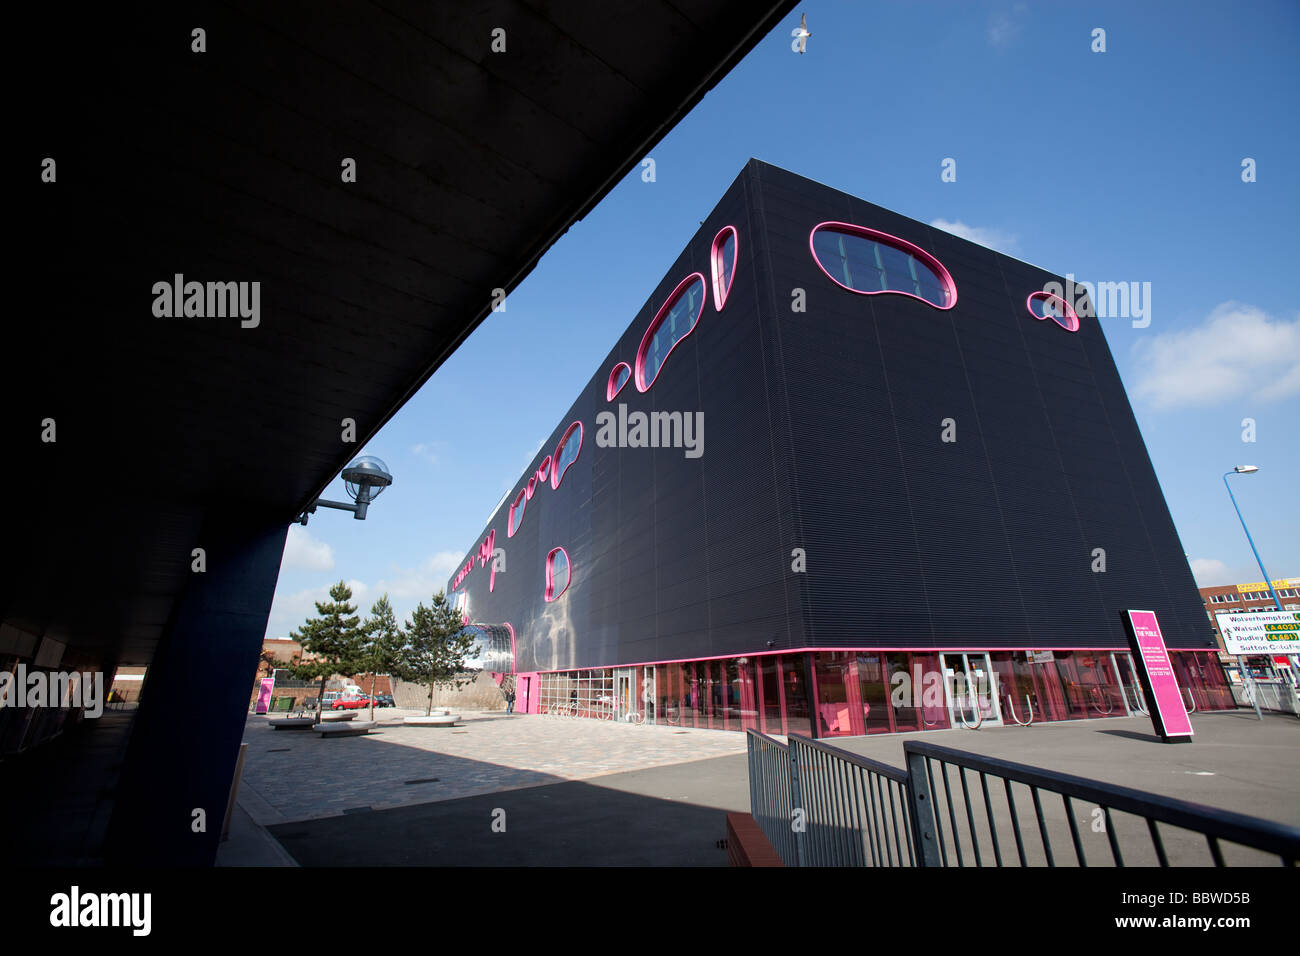 A view of The Public building designed by architect Will Alsop in West Bromwich West Midlands England UK - Stock Image